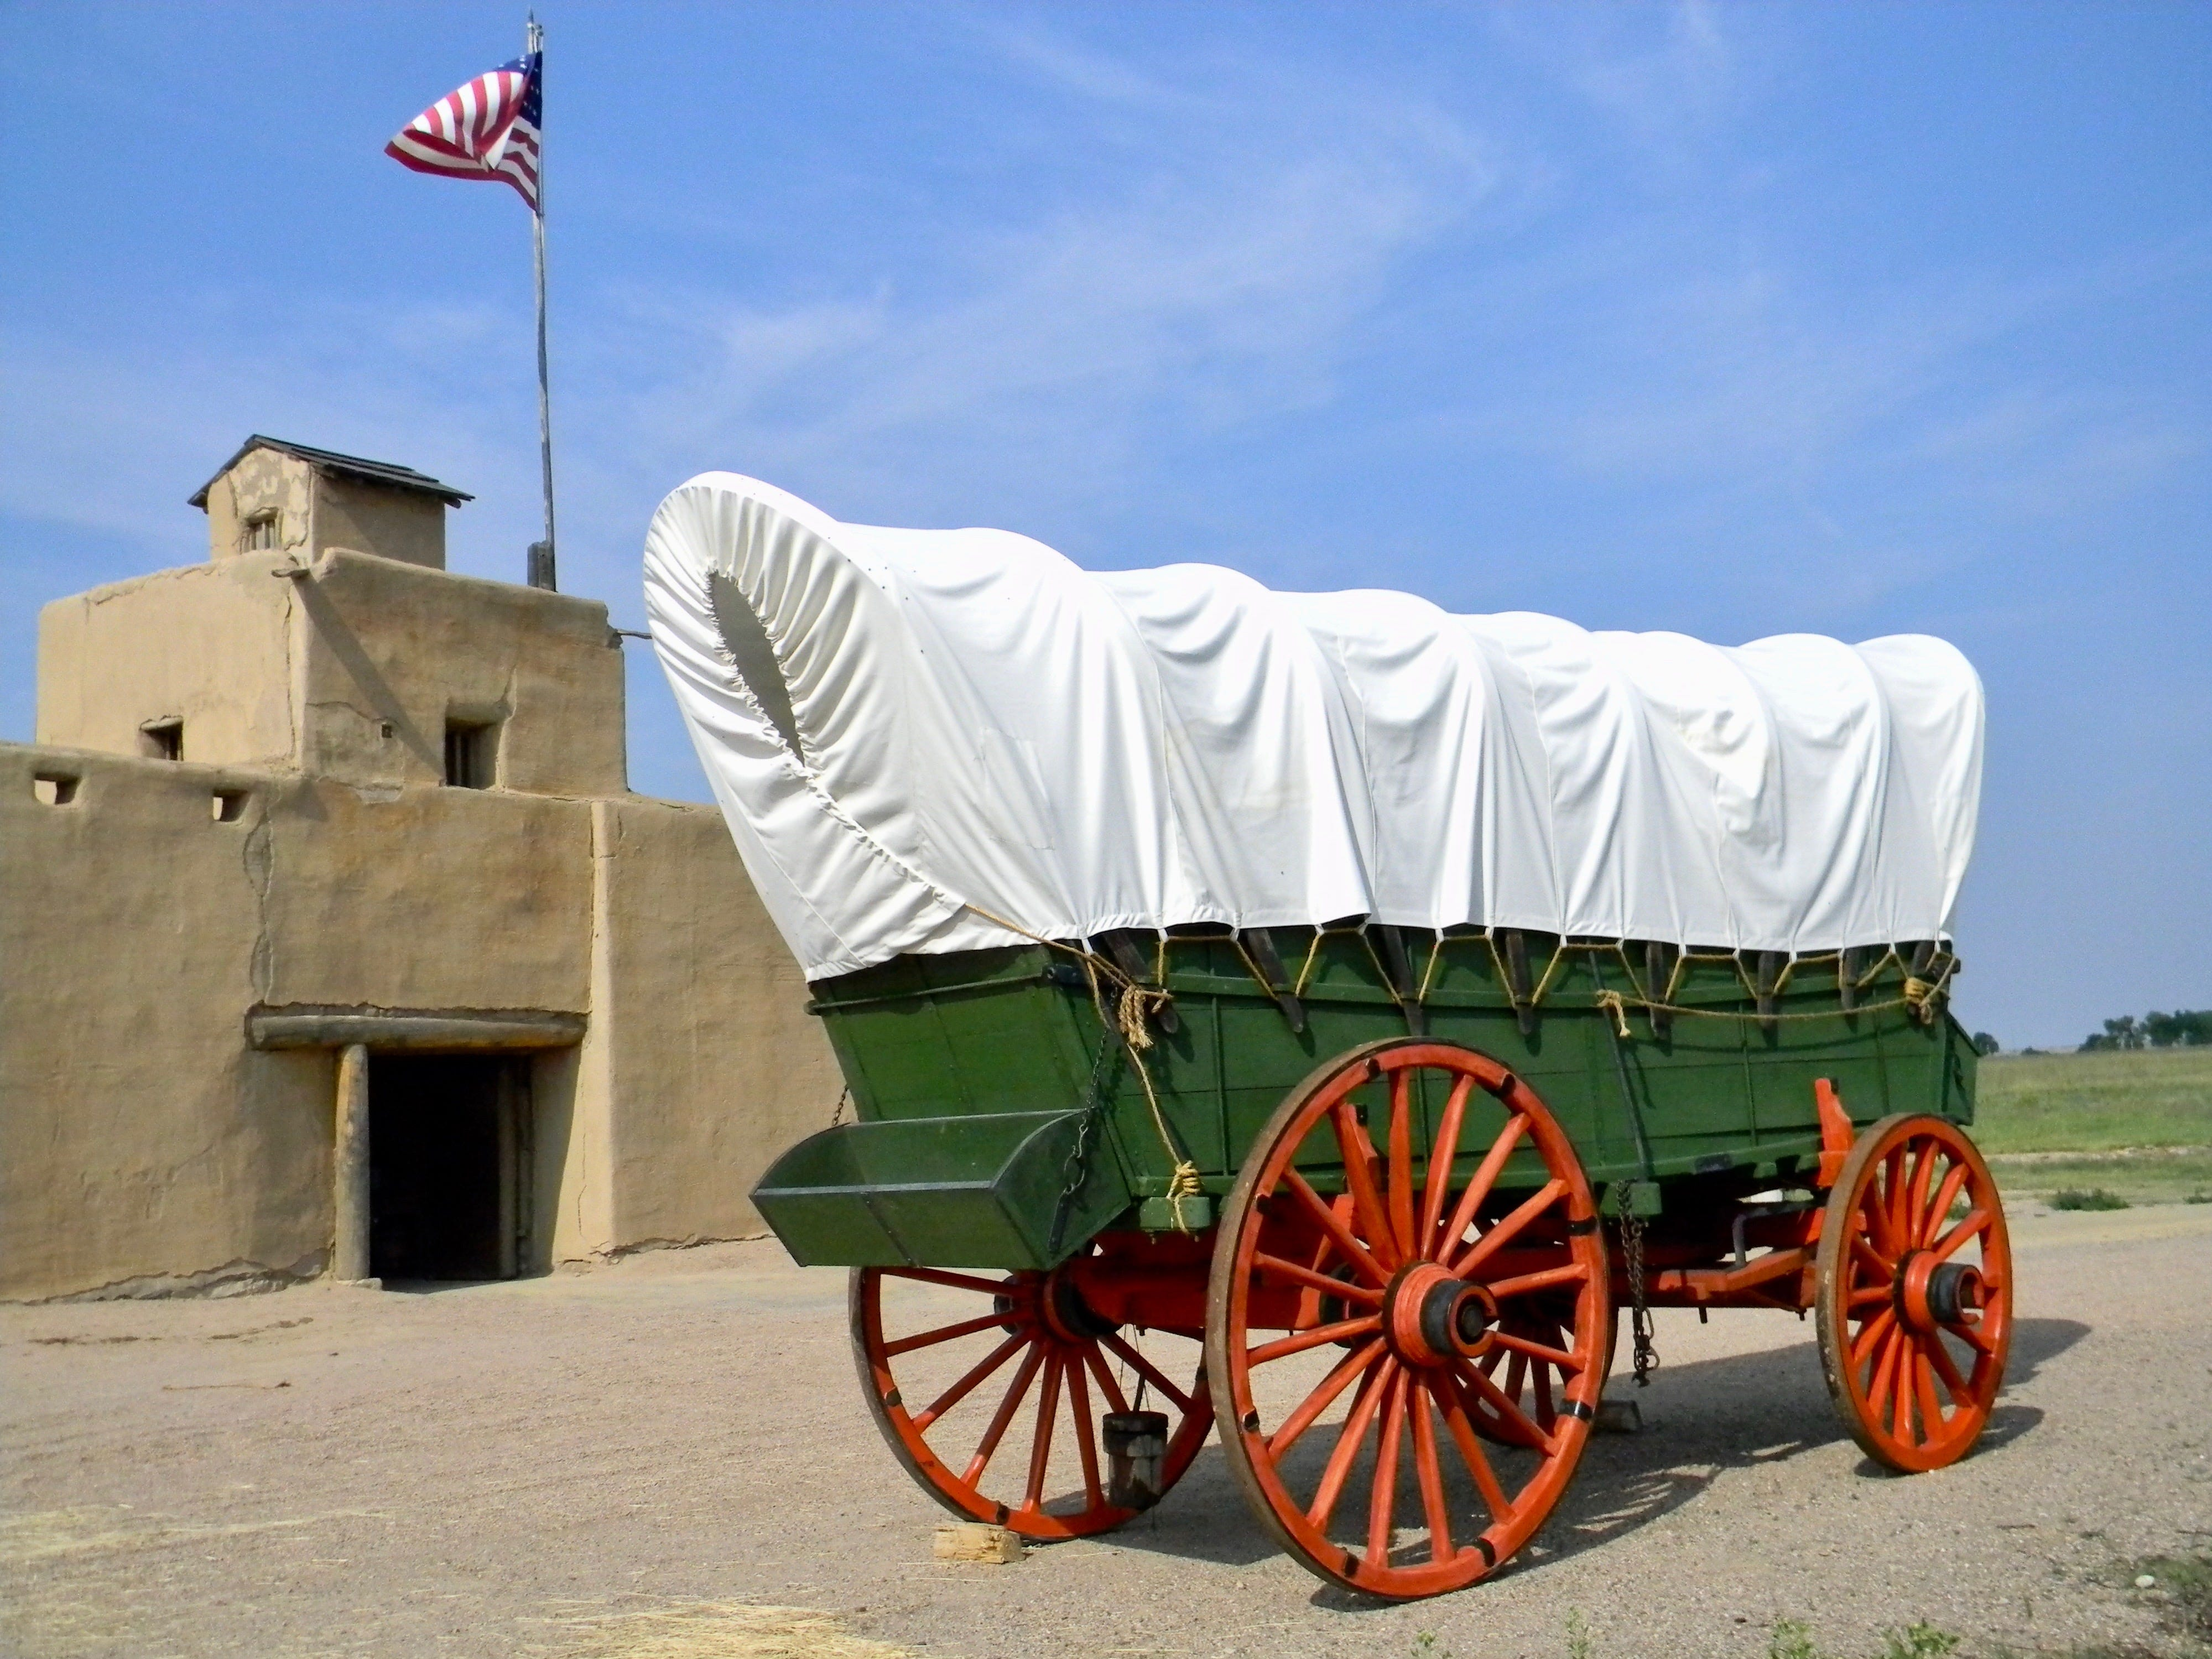 This conestoga wagon at Bent's Old Fort, popularly called a prairie schooner, was a mainstay in trade along the Santa Fe Trail. It was later replaced by larger Dearborn wagons.